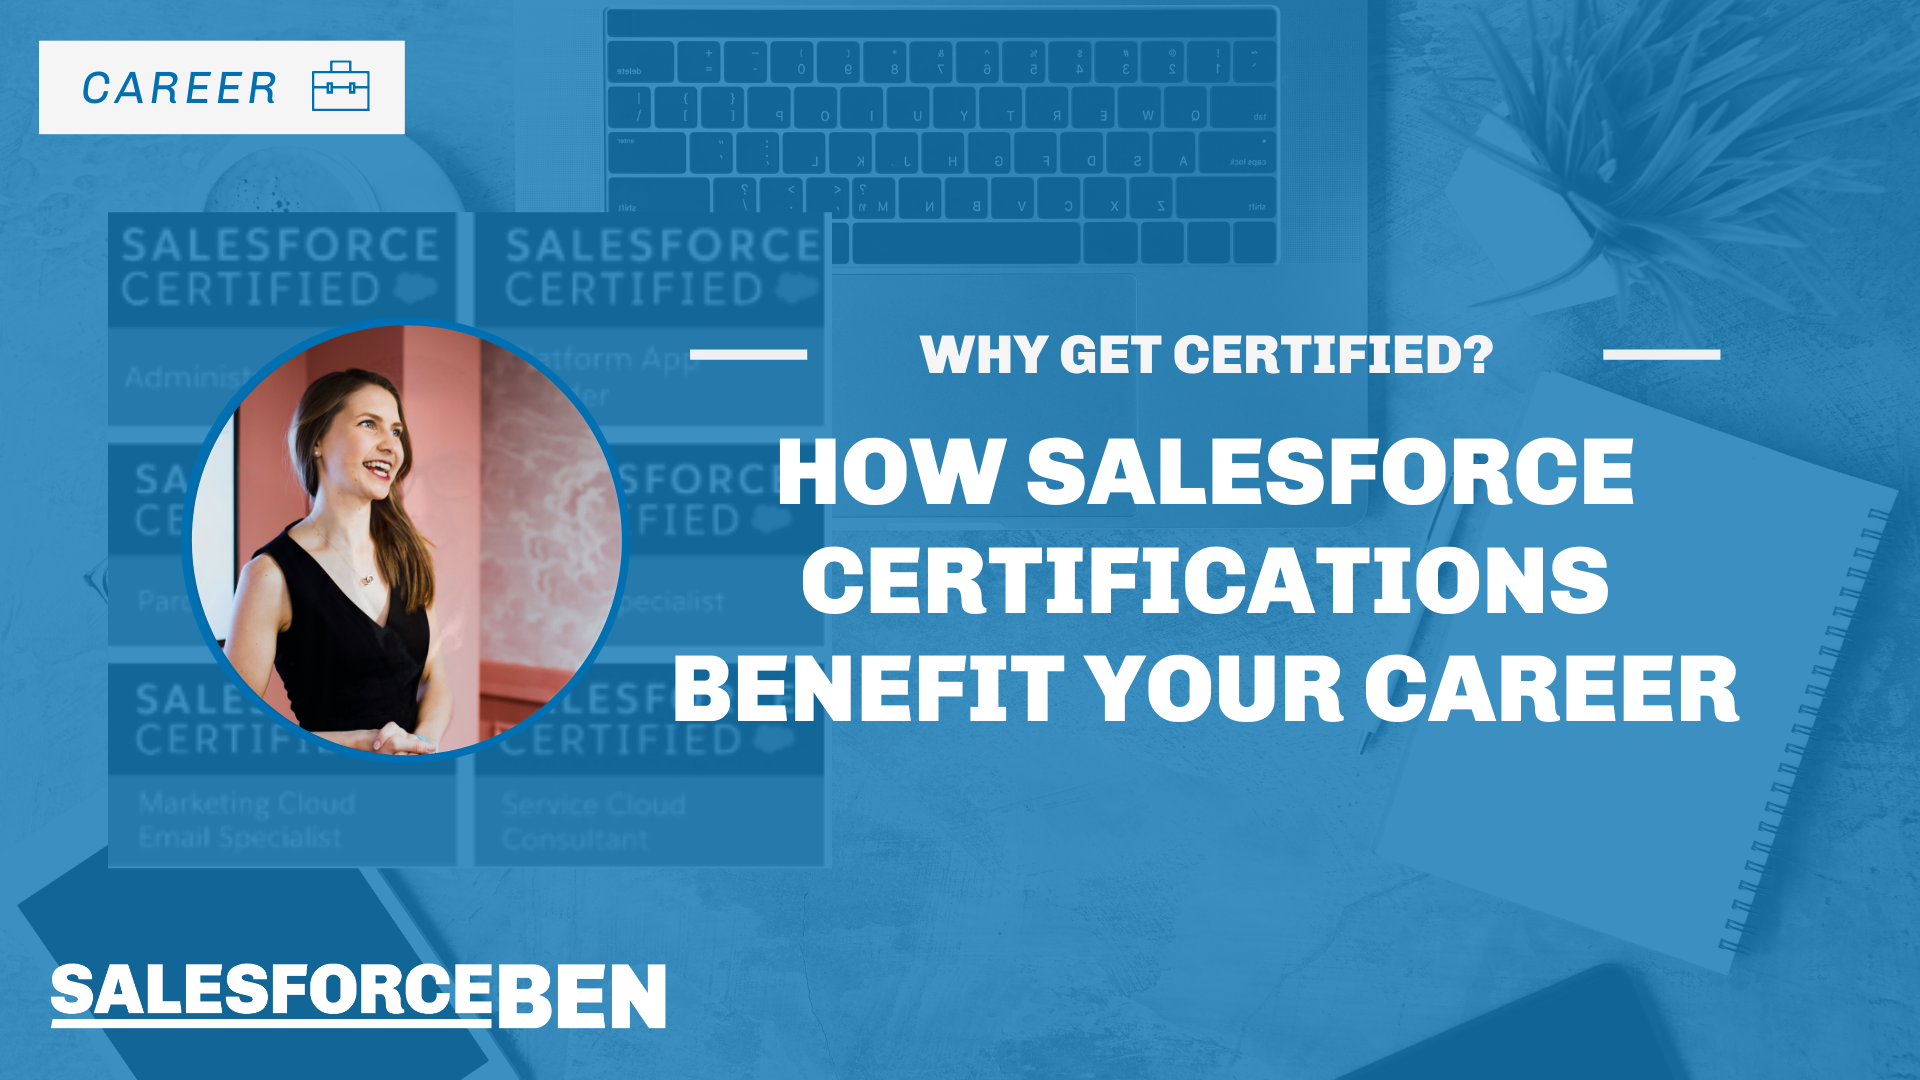 Why Get Salesforce Certified? How Certifications Benefit Your Career